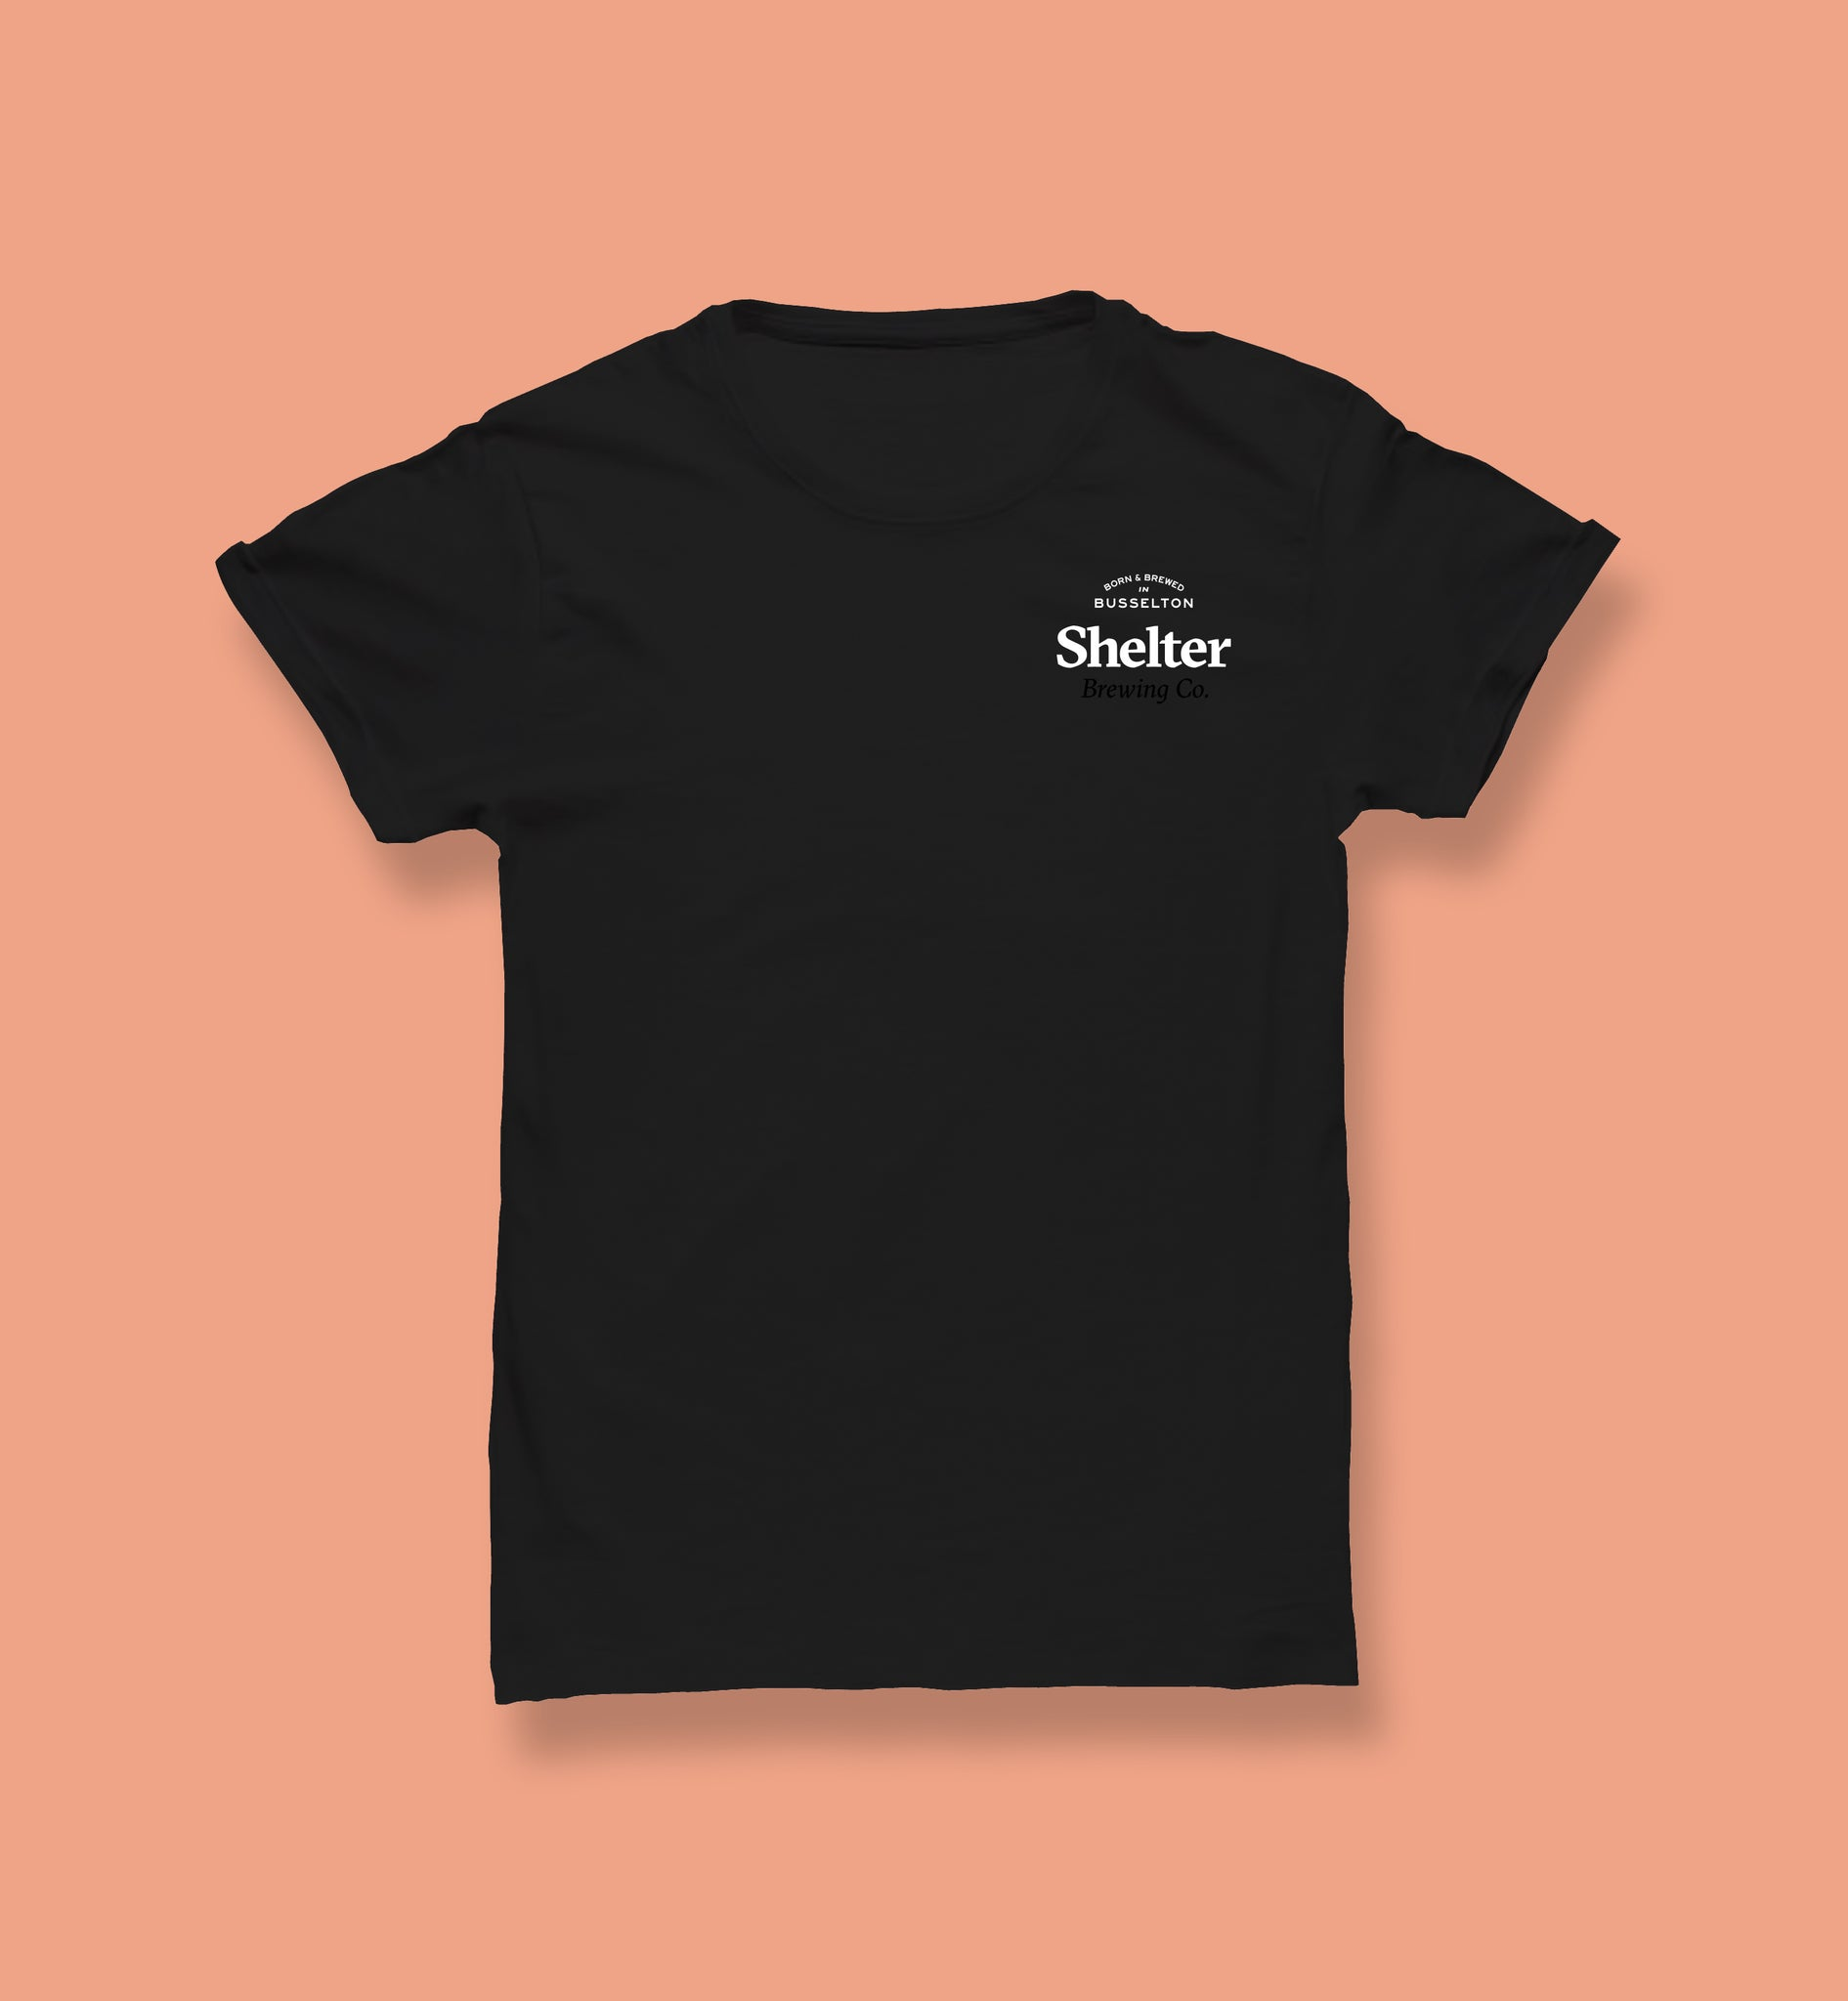 Shelter Brewing Tee